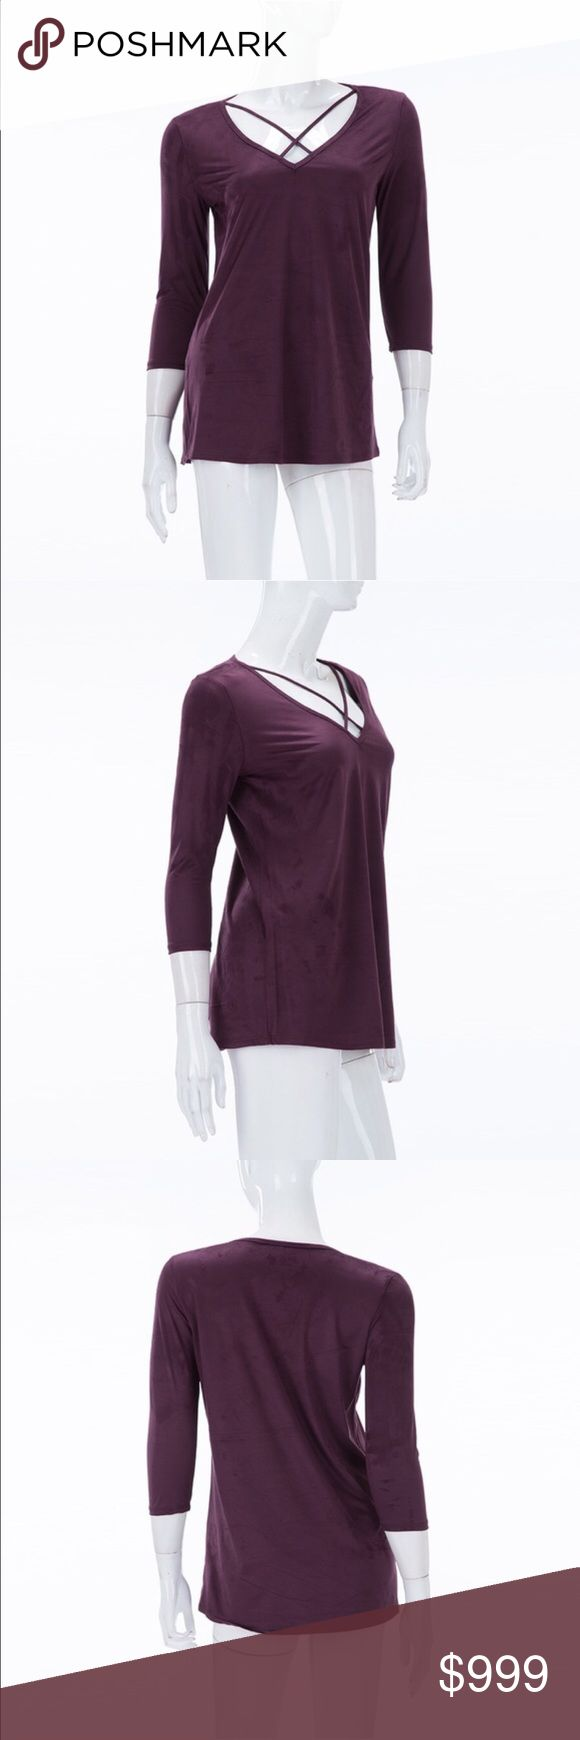 💜Faux suede 💜Purple strappy top with 3/4 sleeves Top💜Faux suede 💜Purple strappy top with 3/4 sleeves. Front straps detail.  💯made in the USA.  90% polyester and 10% spandex.💜 Tops